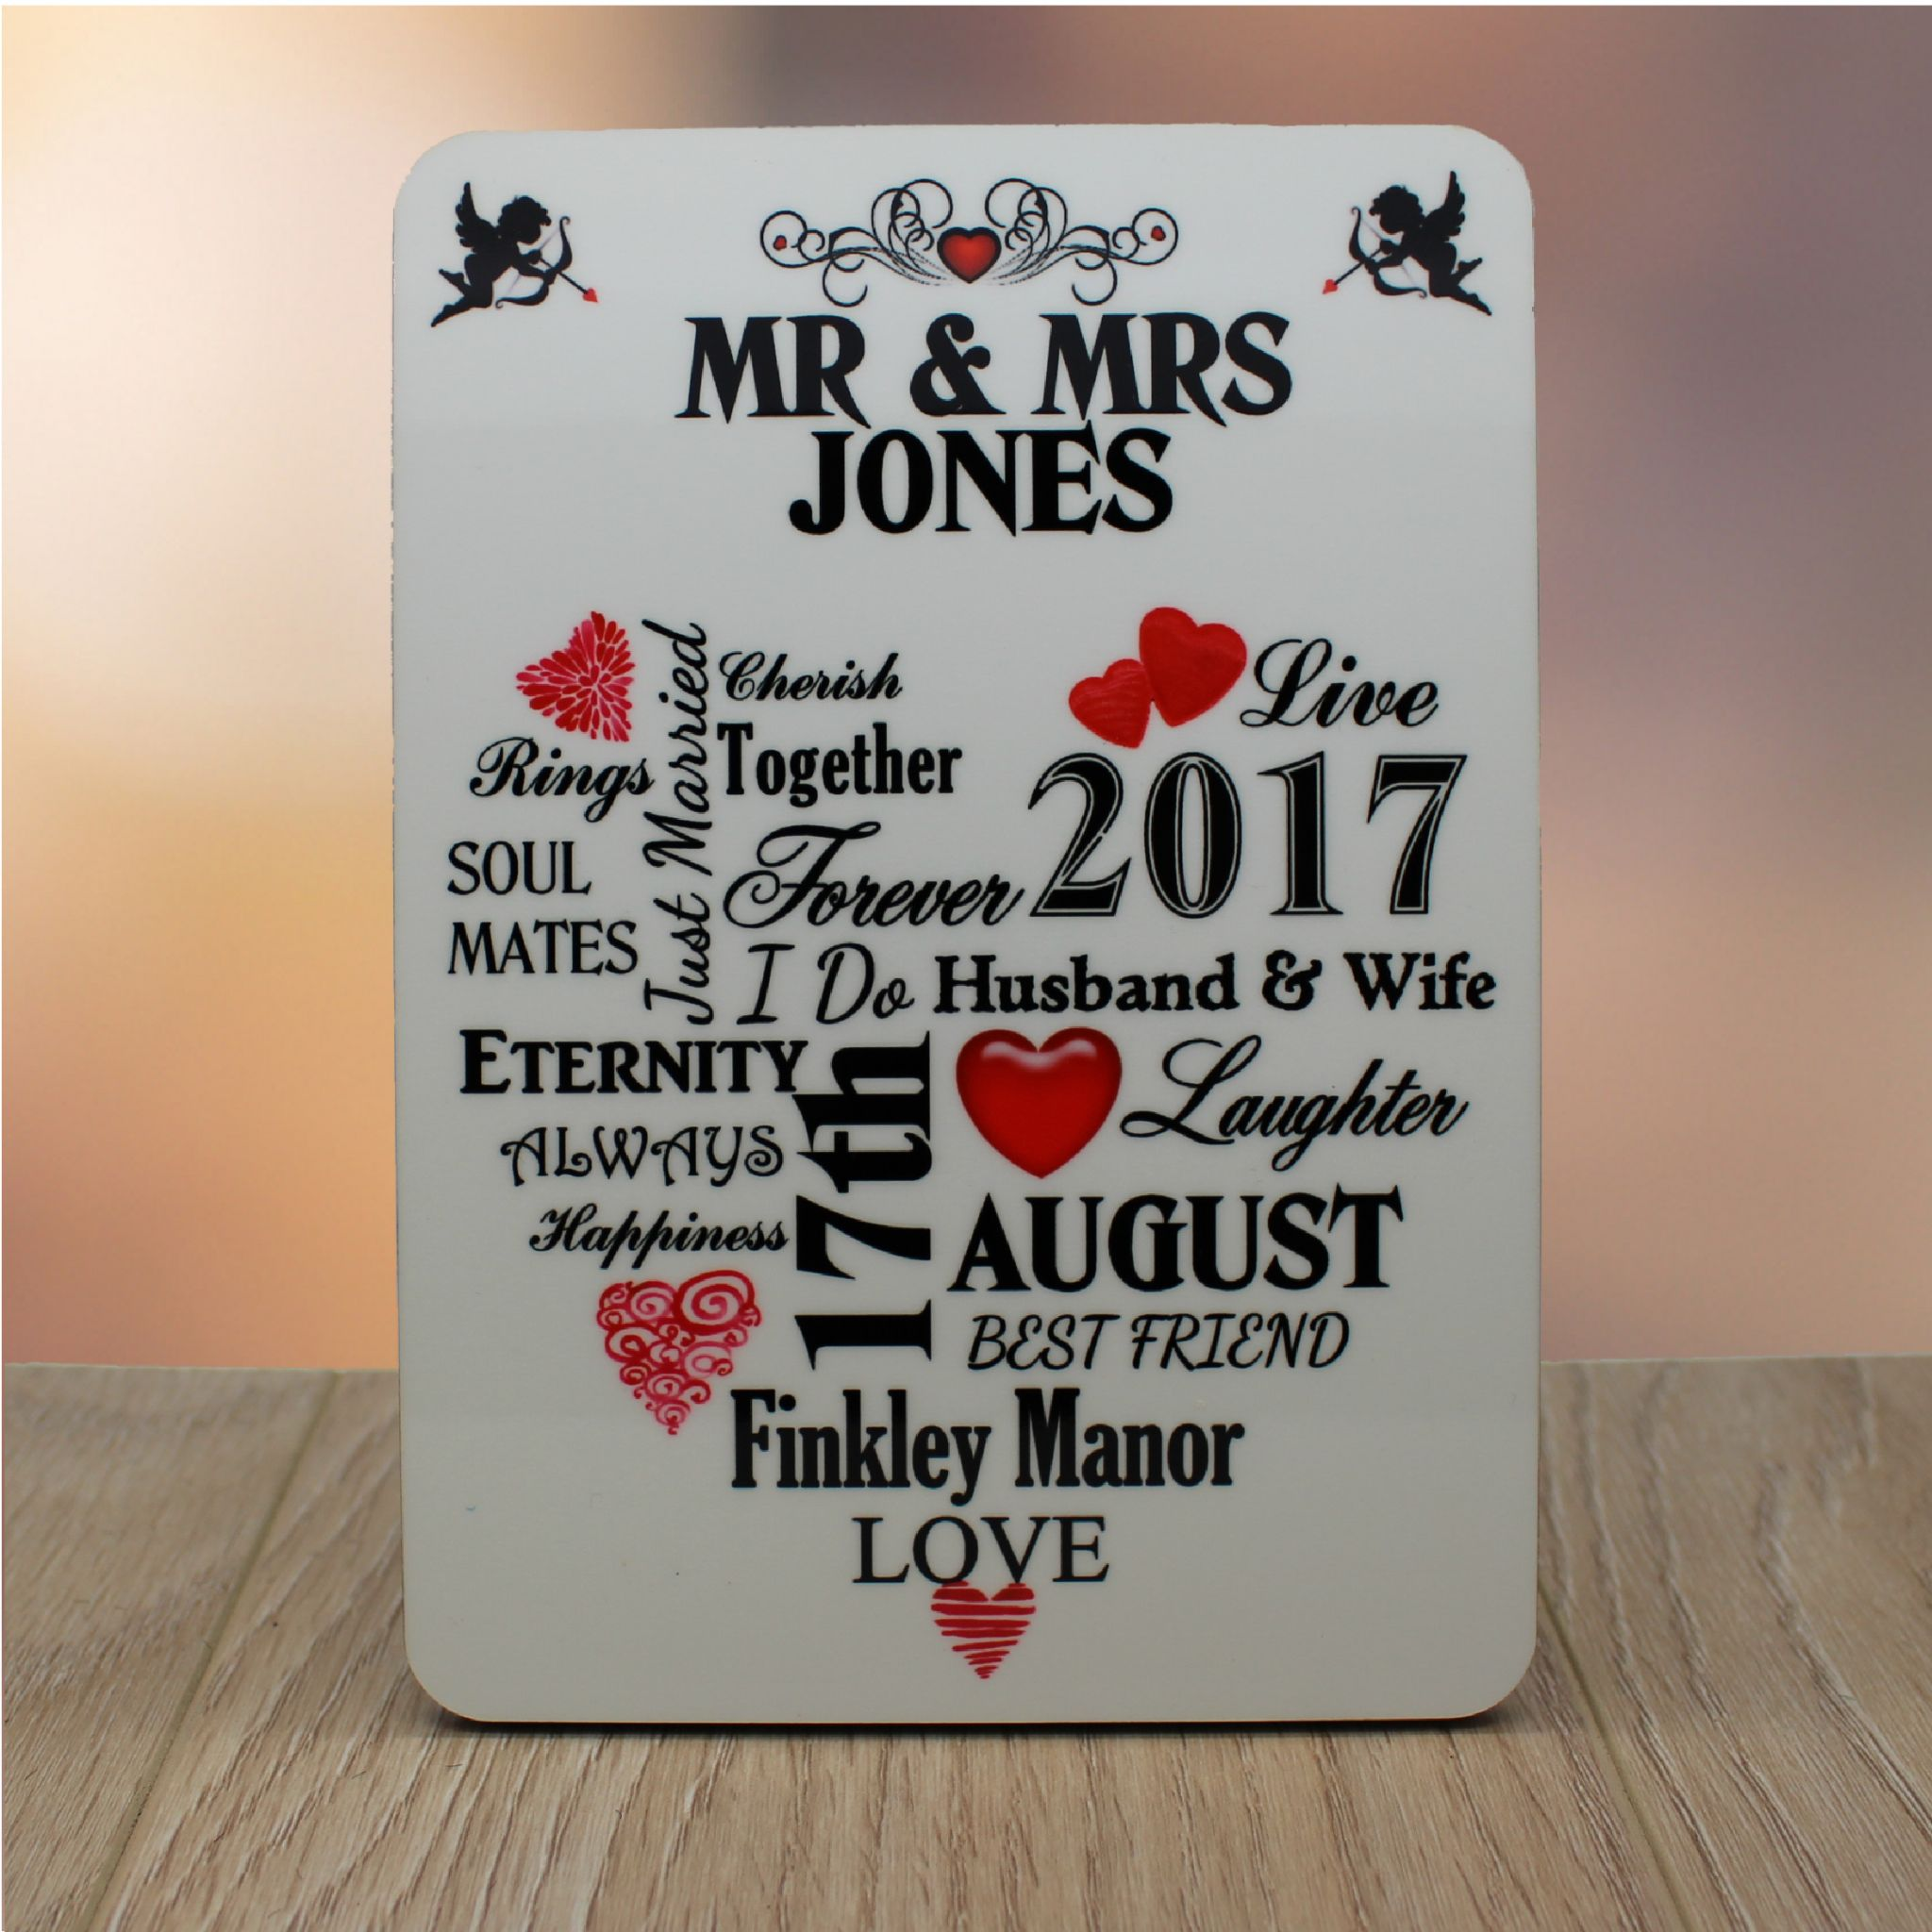 personalised mr mrs wedding word art wood panel frame print f45 wedding keepsake gift - Mr And Mrs Frame